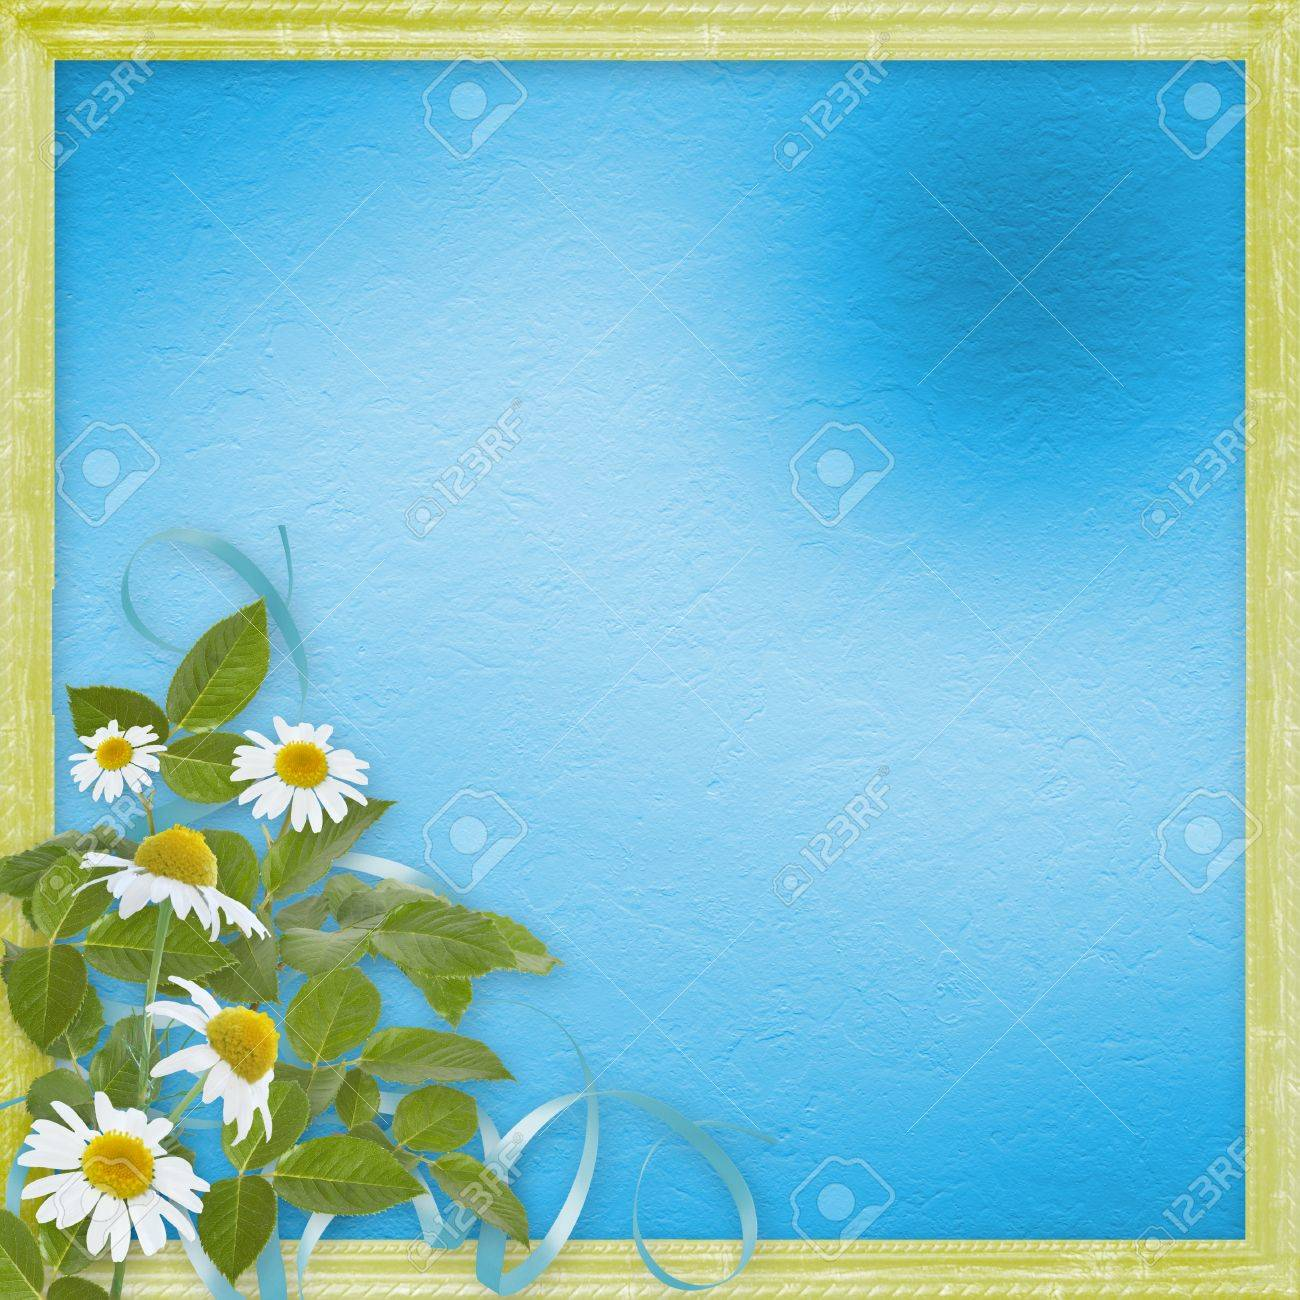 grunge frames with beautiful daisy for design stock photo 12313779